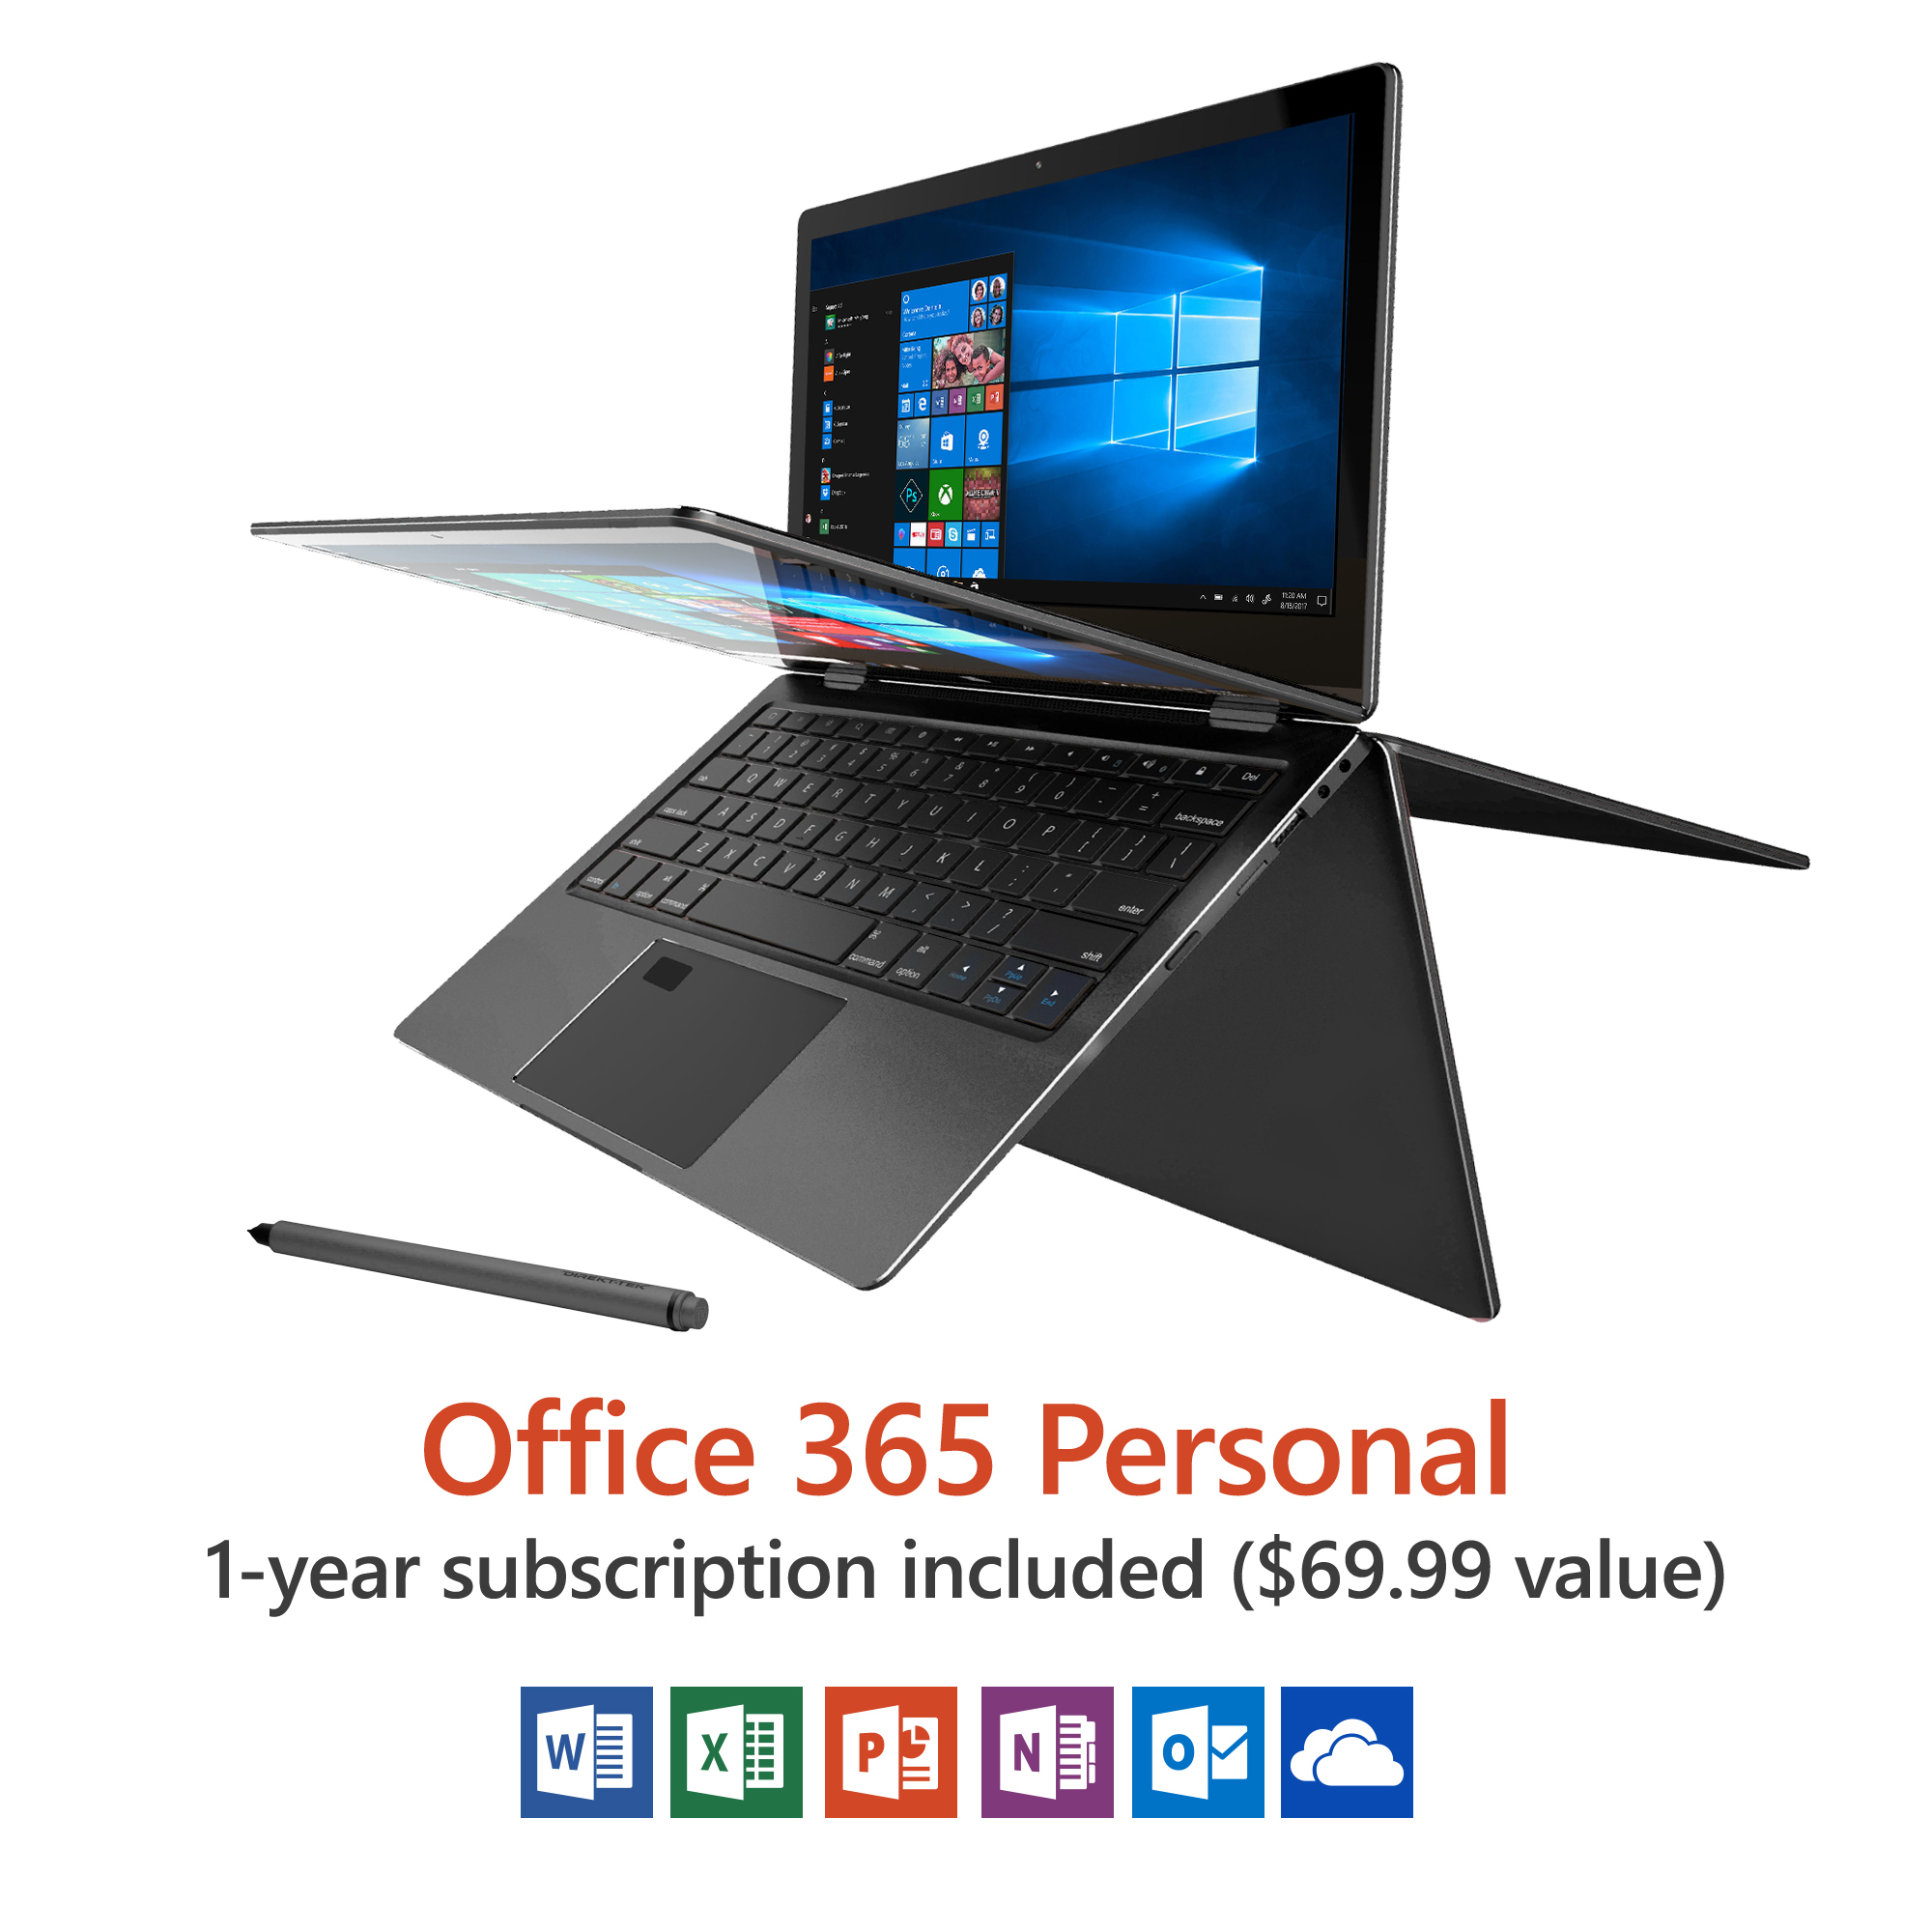 "Direkt-Tek 11.6"" Convertible Touchscreen Laptop, Windows 10, Office 365 Personal 1-Year Subscription... by Direkt-Tek"